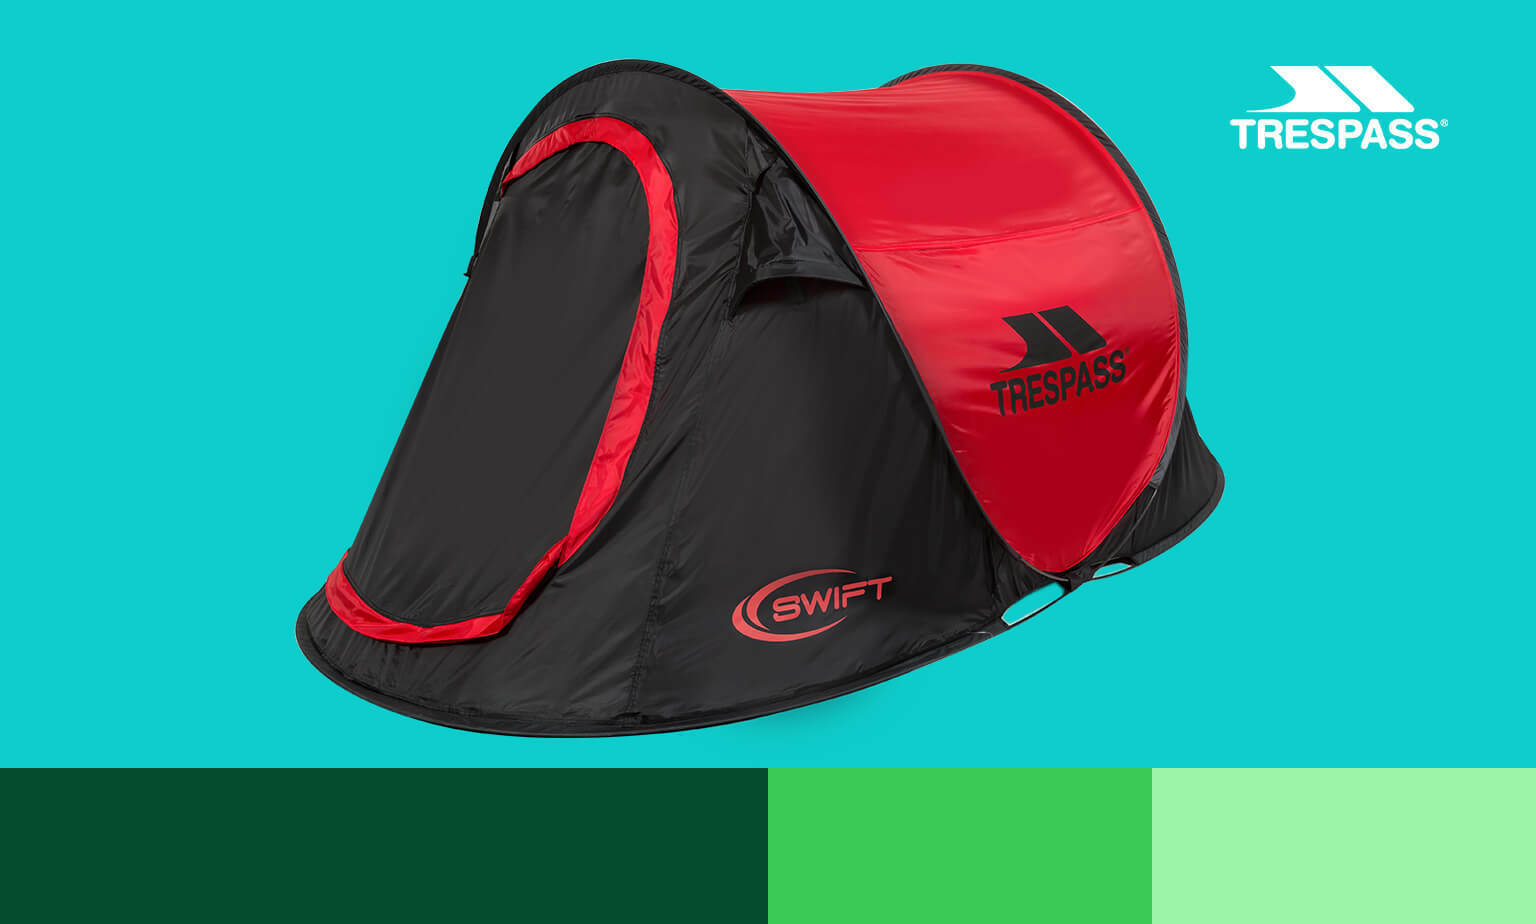 Up to 70% off Trespass Camping & Hiking